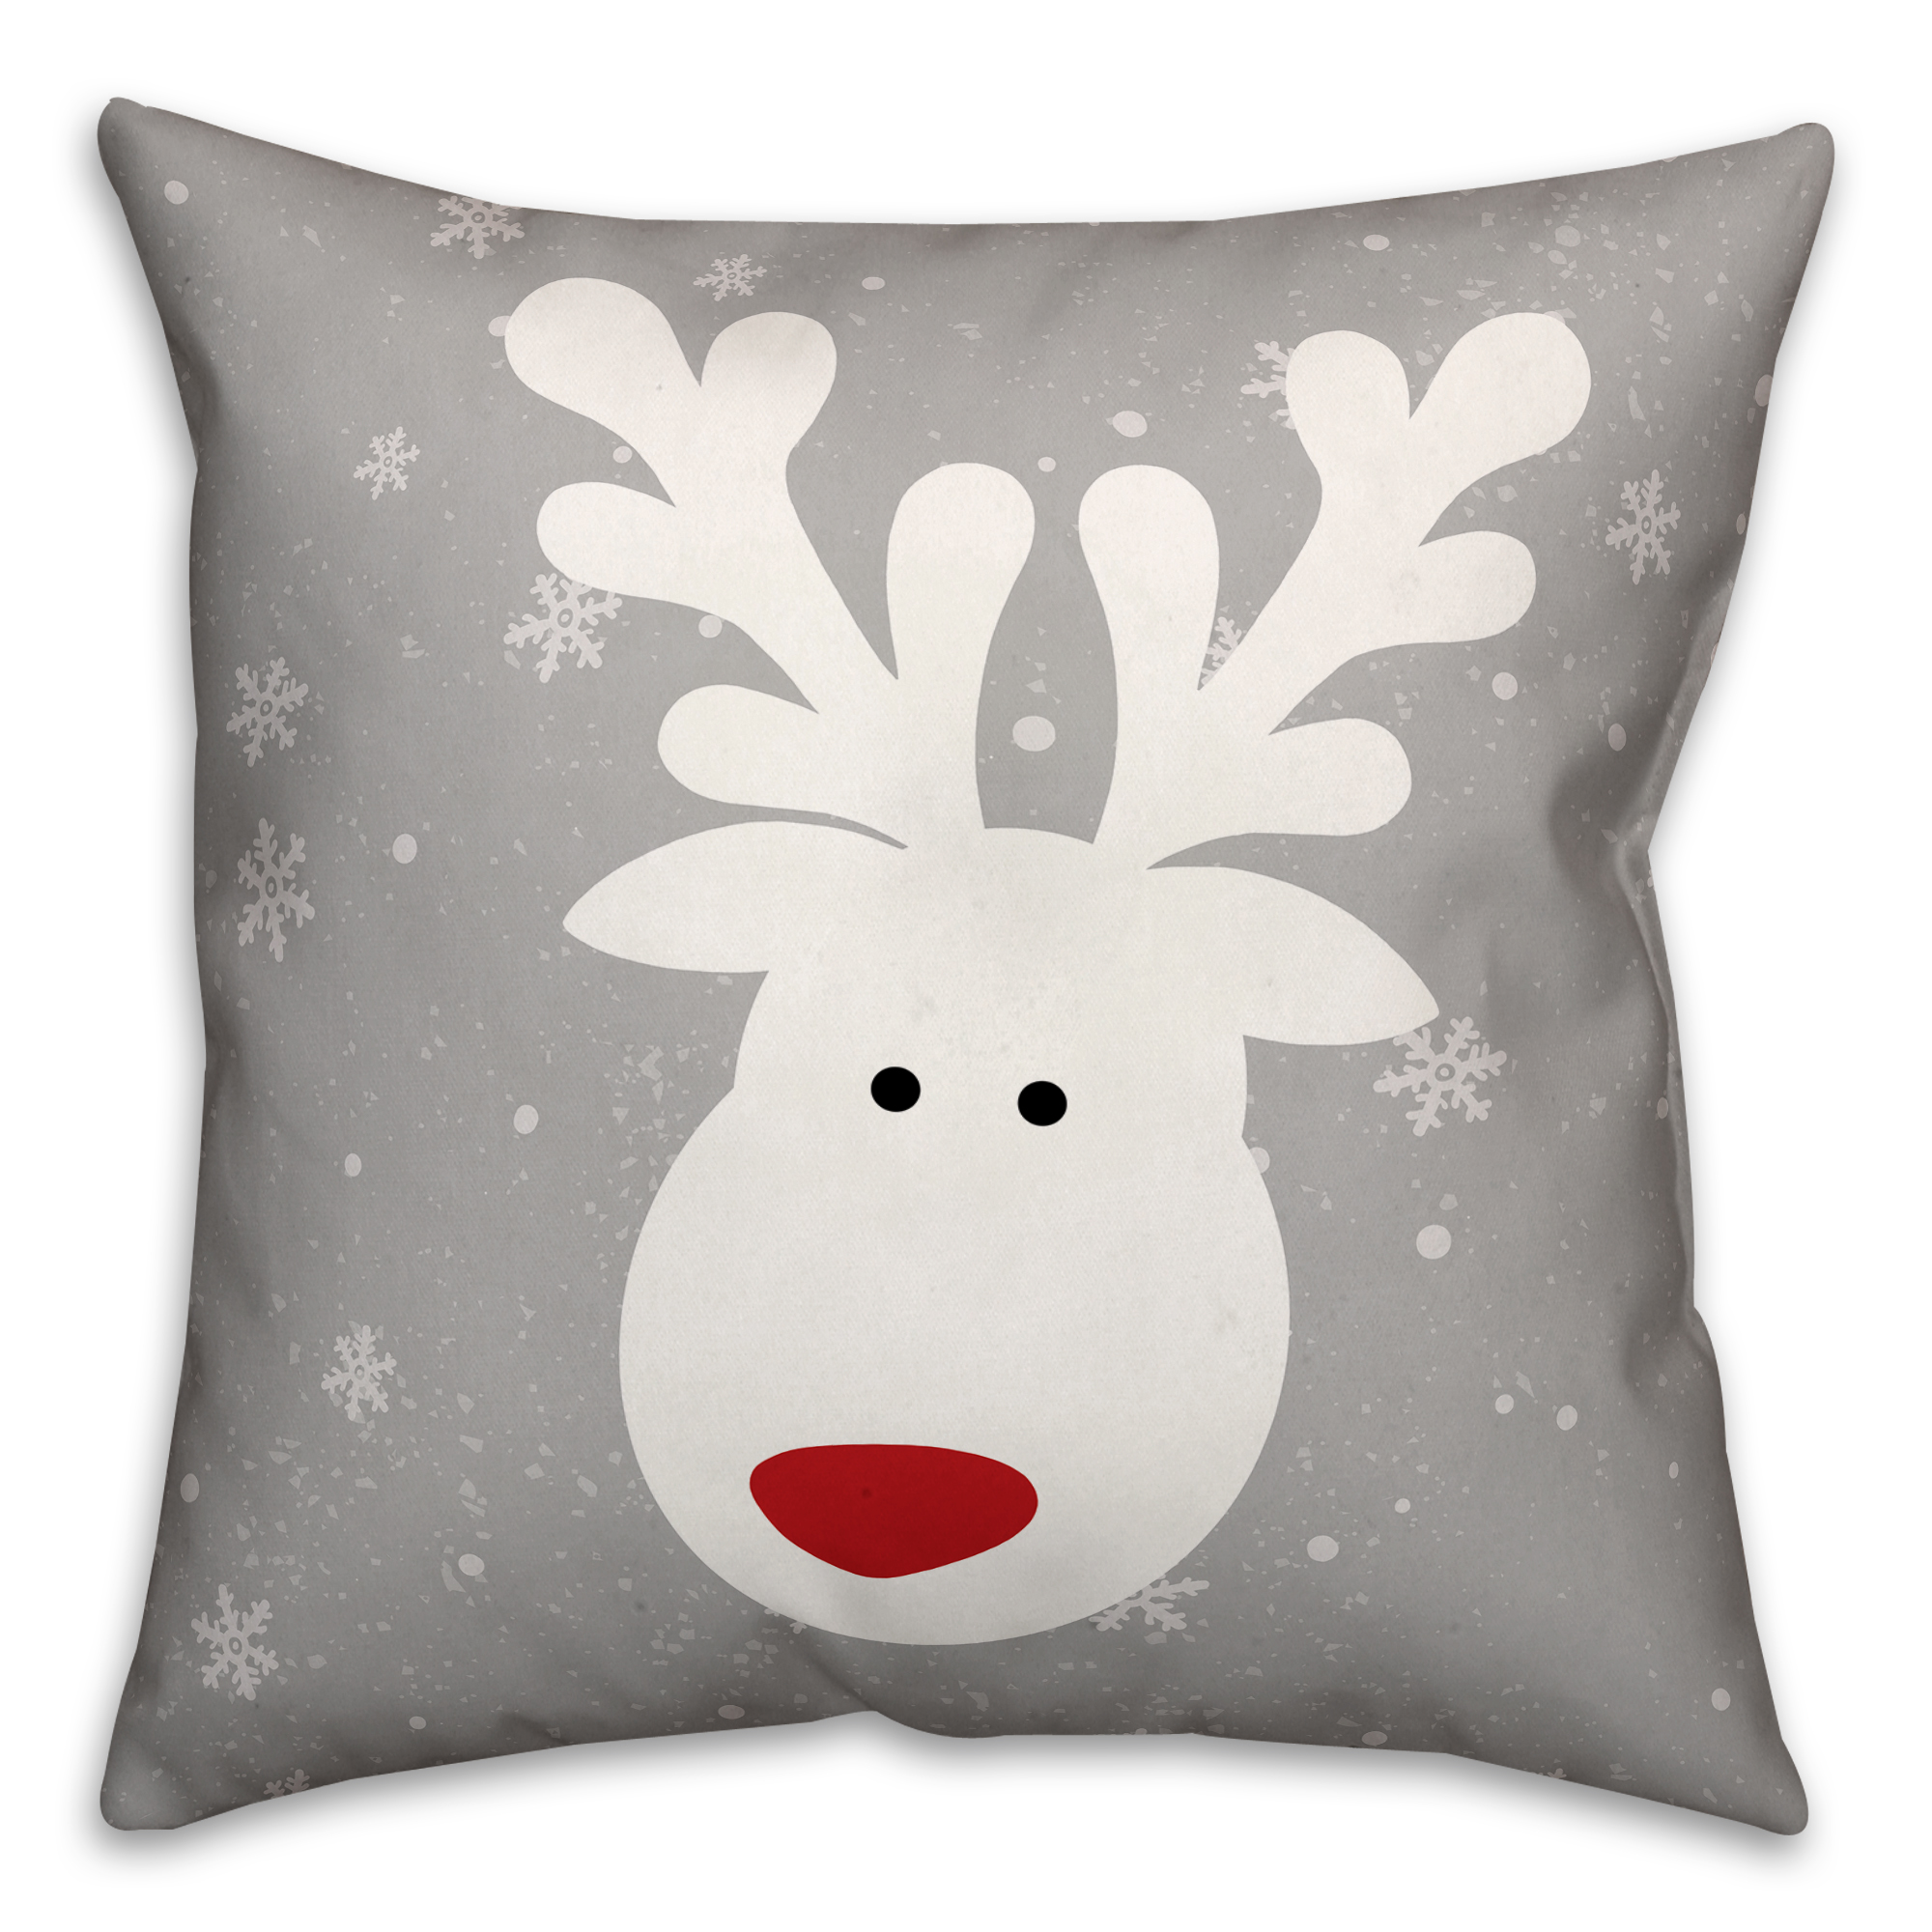 Cute White Deer 16x16 Spun Poly Pillow